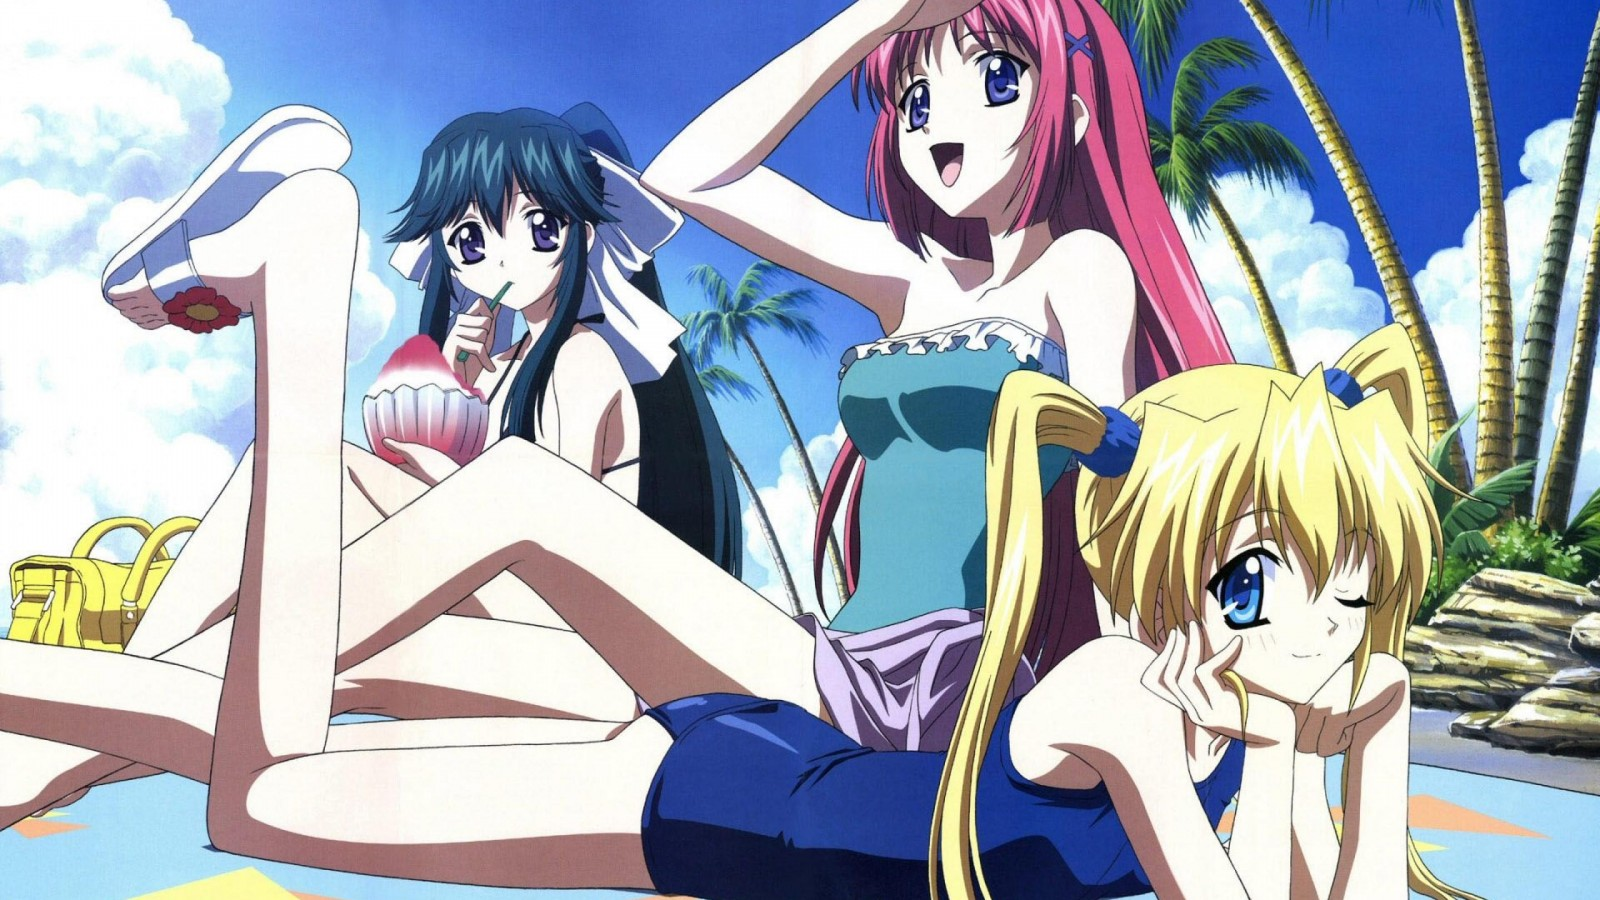 Anime Girl Beach Sunbathing    HD desktop HD Wallpaper